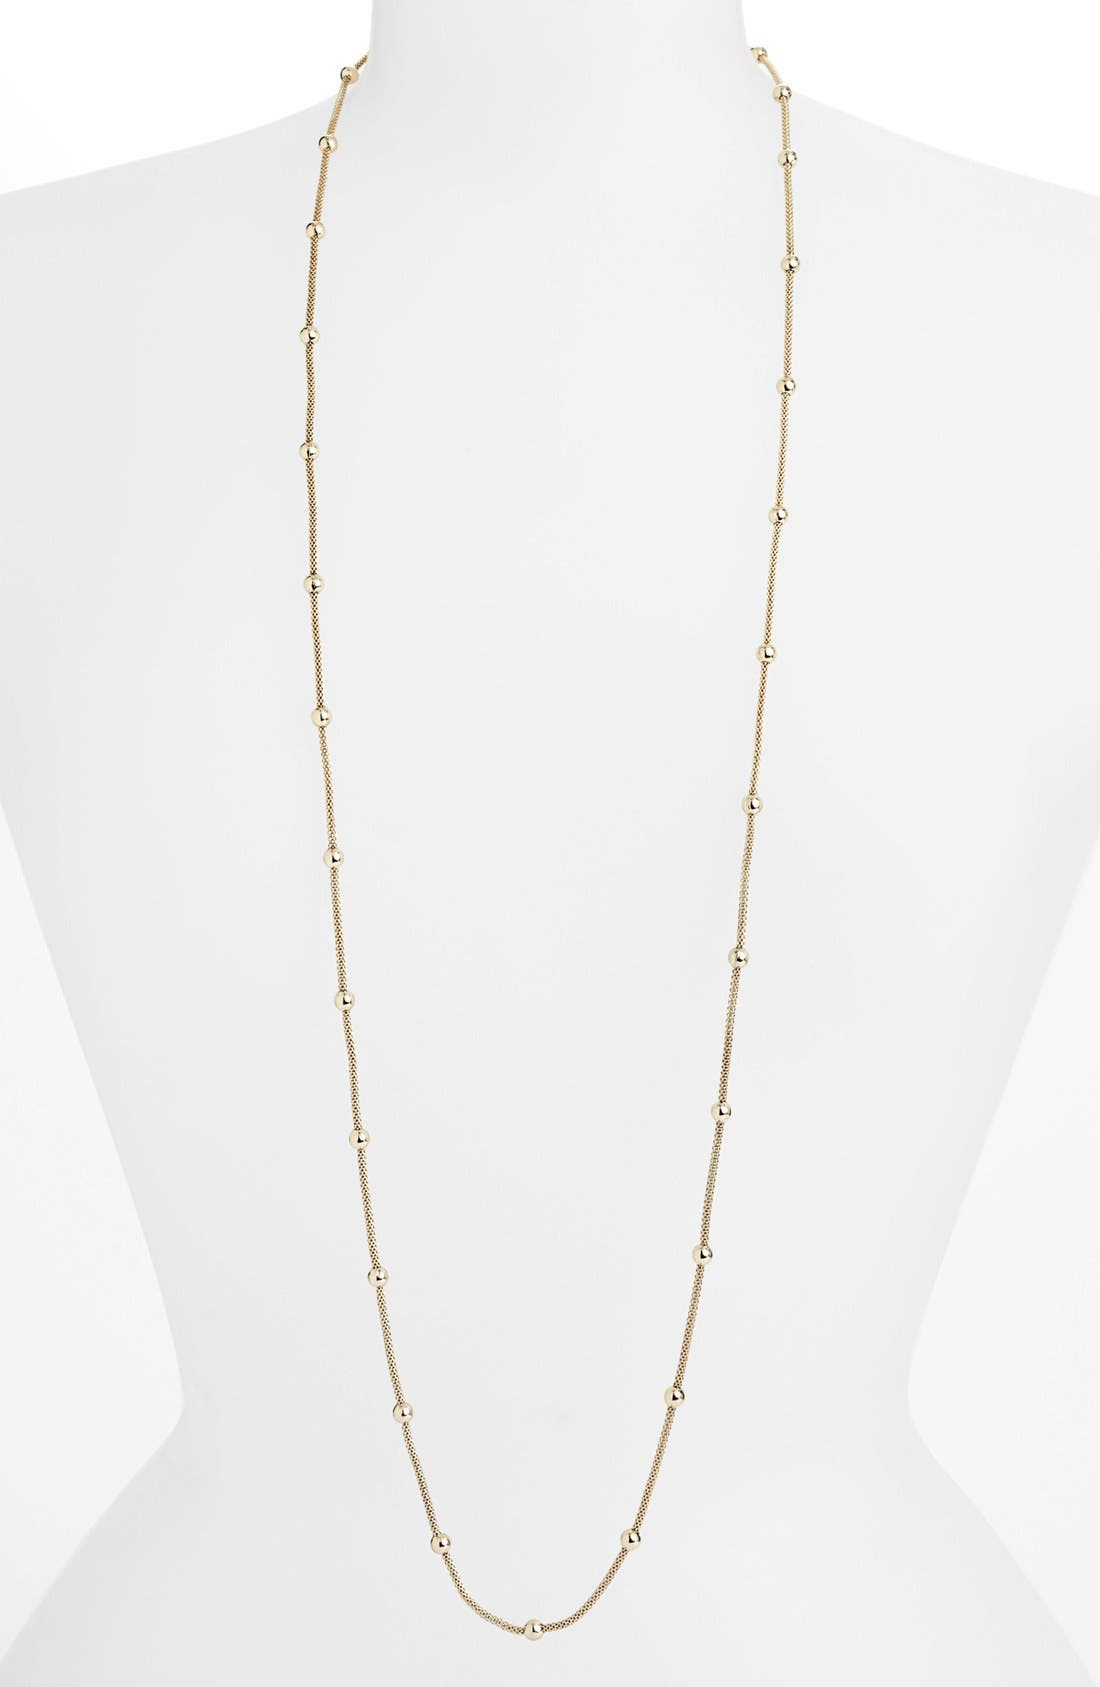 Main Image - Anne Klein Bead Station Long Mesh Necklace